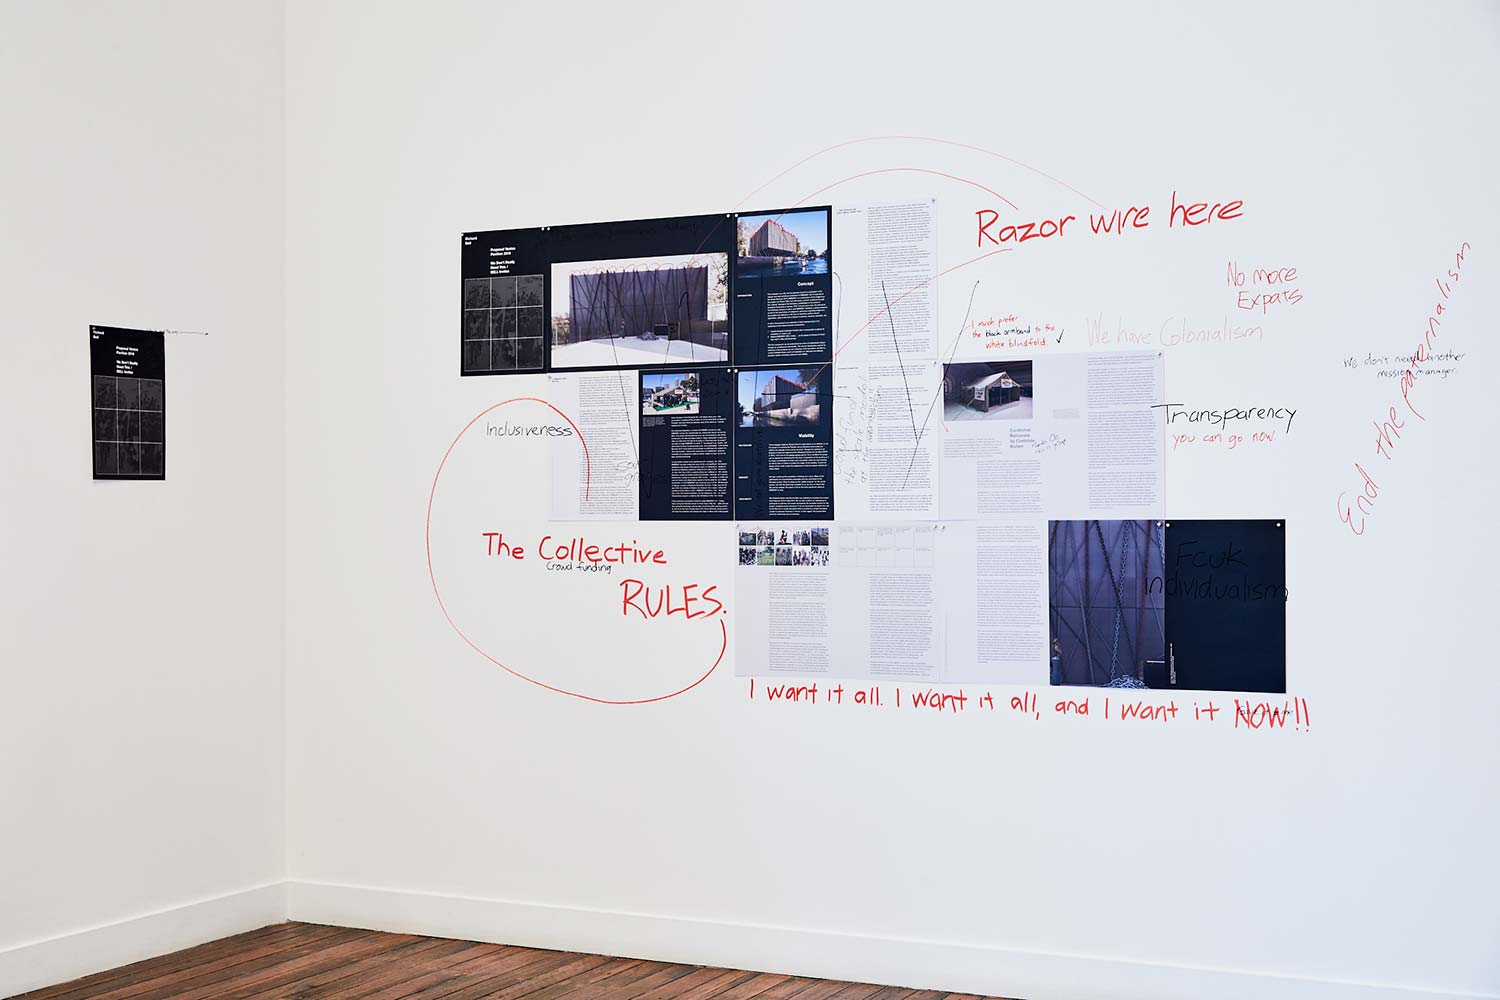 <em>Pericolo! Artisti al lavoro</em><br /> 2018 installation at National Art School Gallery<br /> digital prints, felt-tipped pen on wall<br /> Courtesy the artist and Milani Gallery<br /> Photo: Robin Hearfield